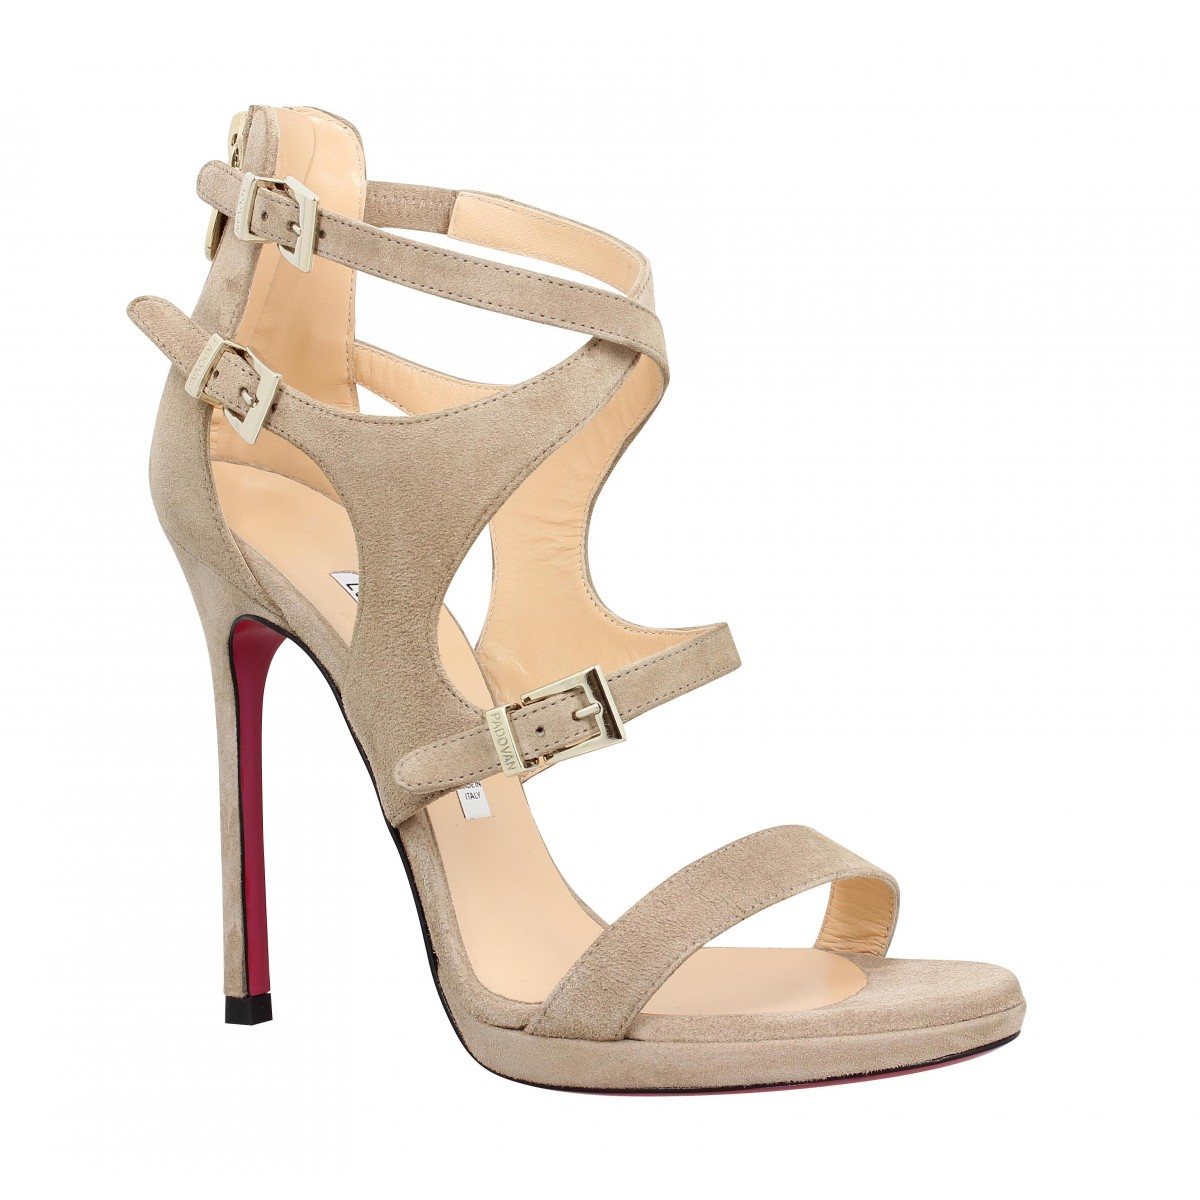 Sandales talons LUCIANO PADOVAN 802 velours Femme Taupe